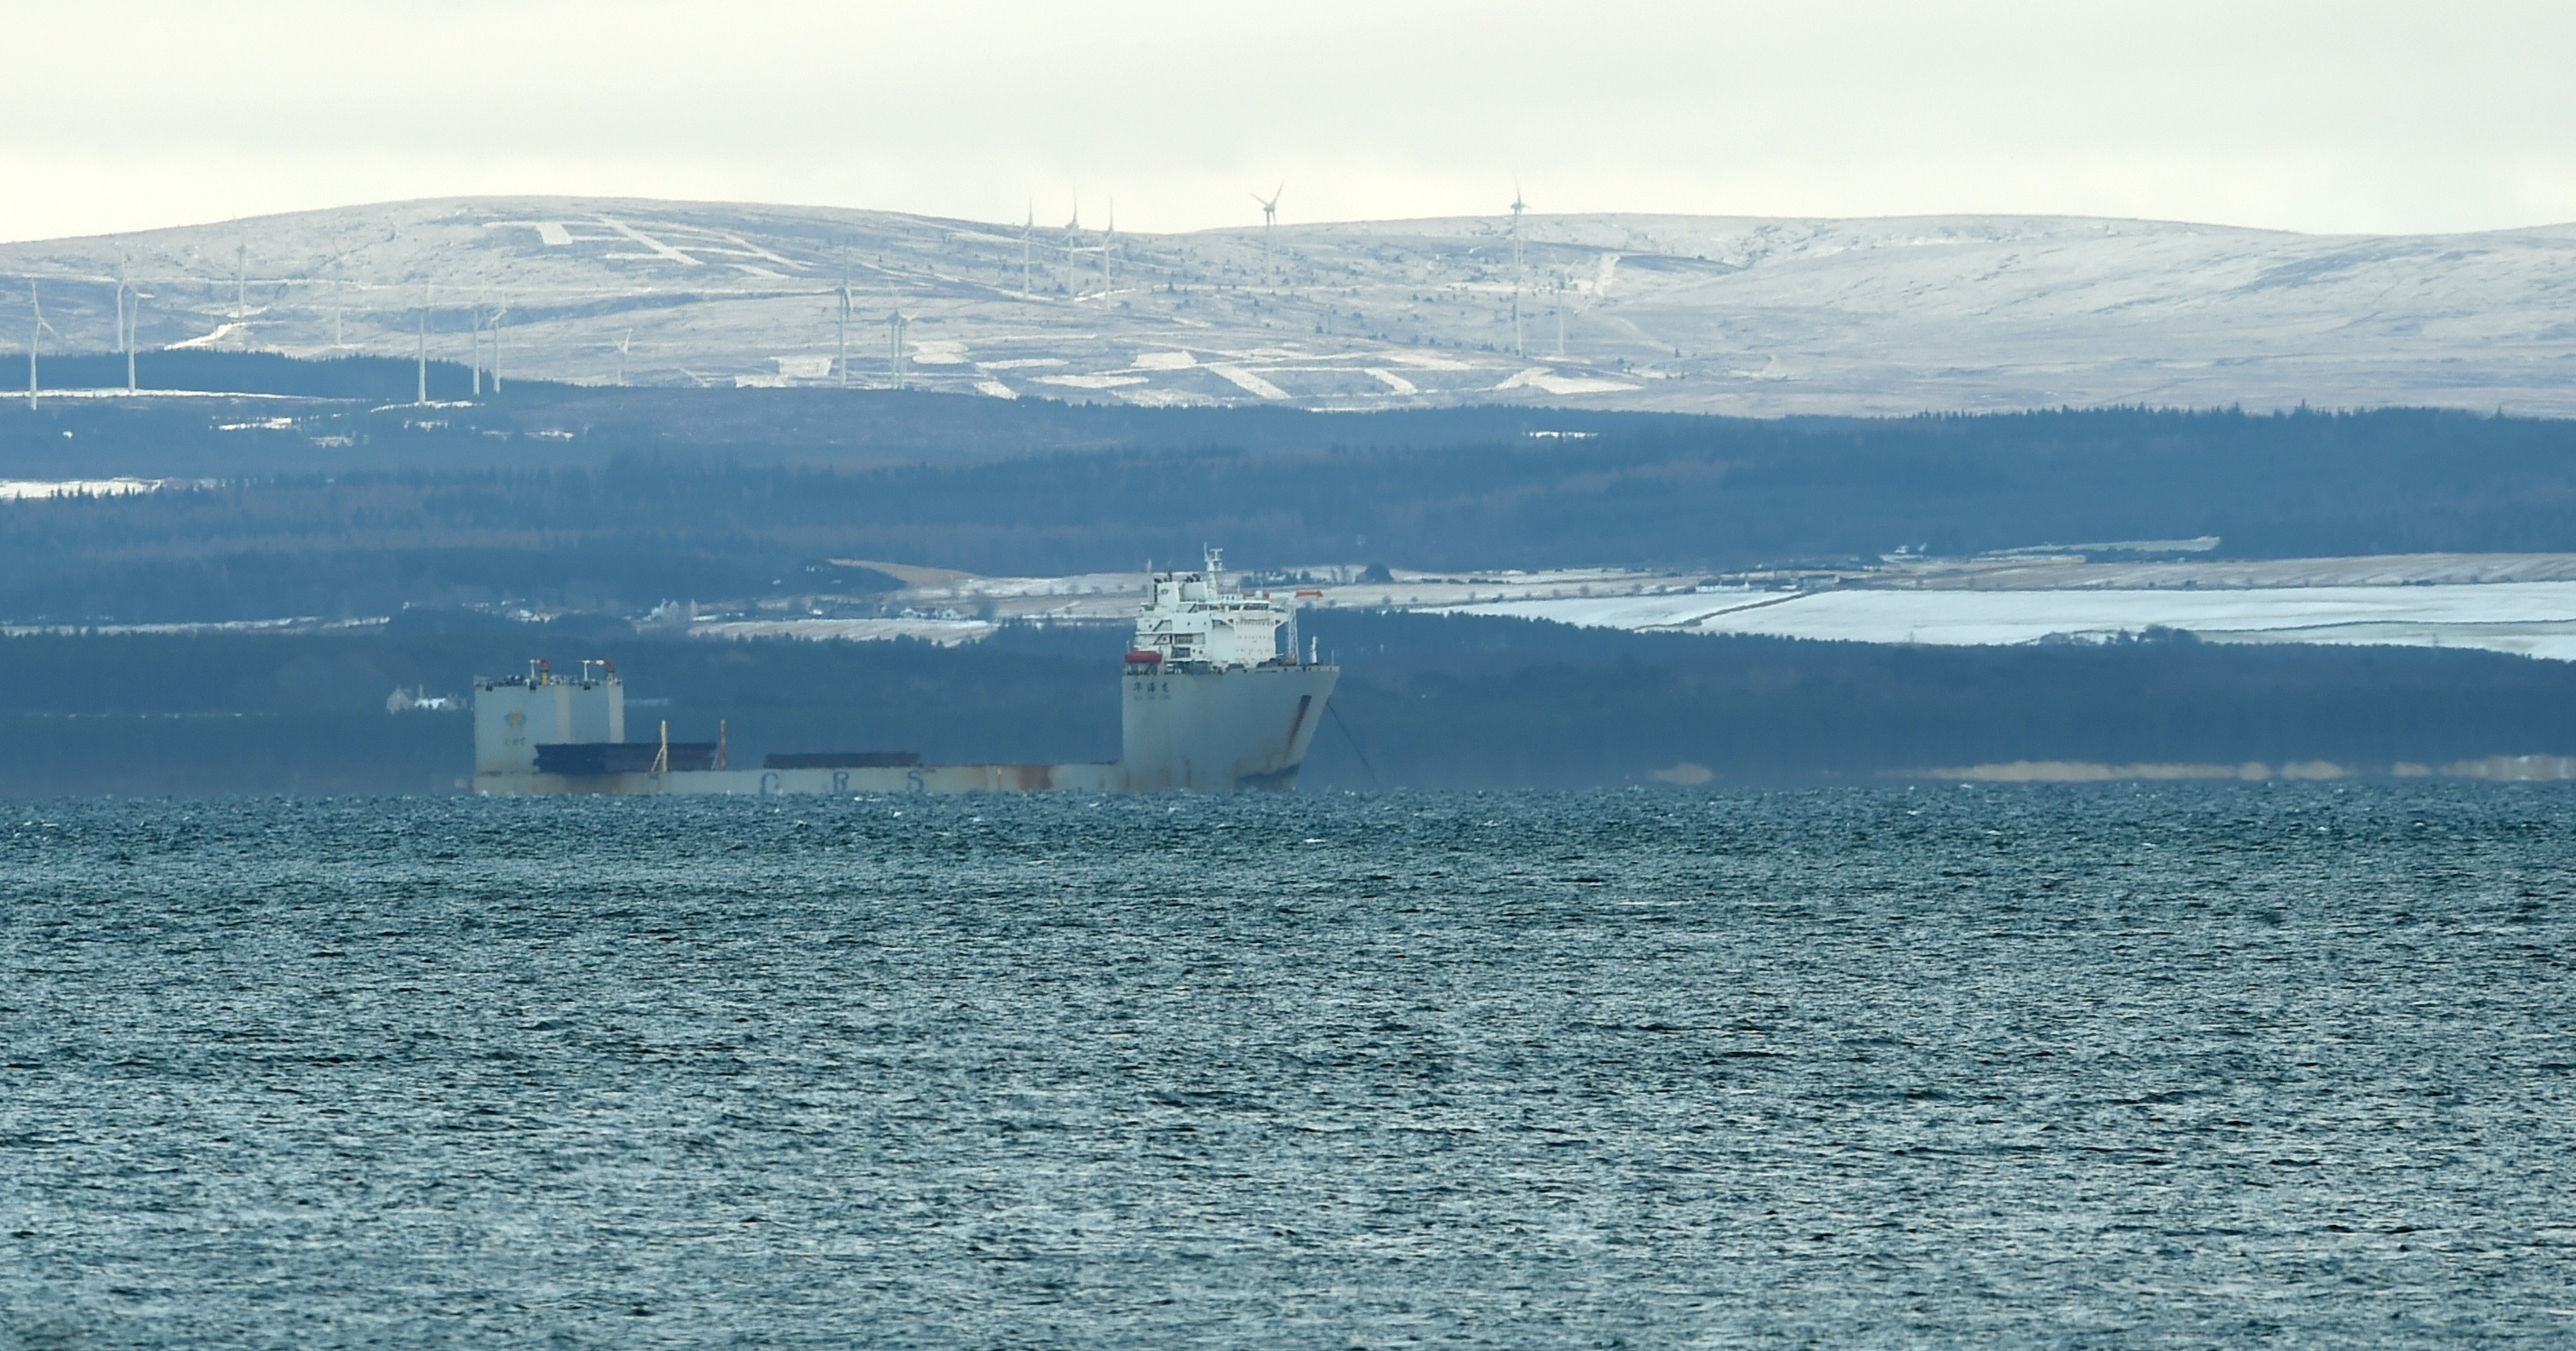 The Hua Hai Long anchored in the Moray Firth